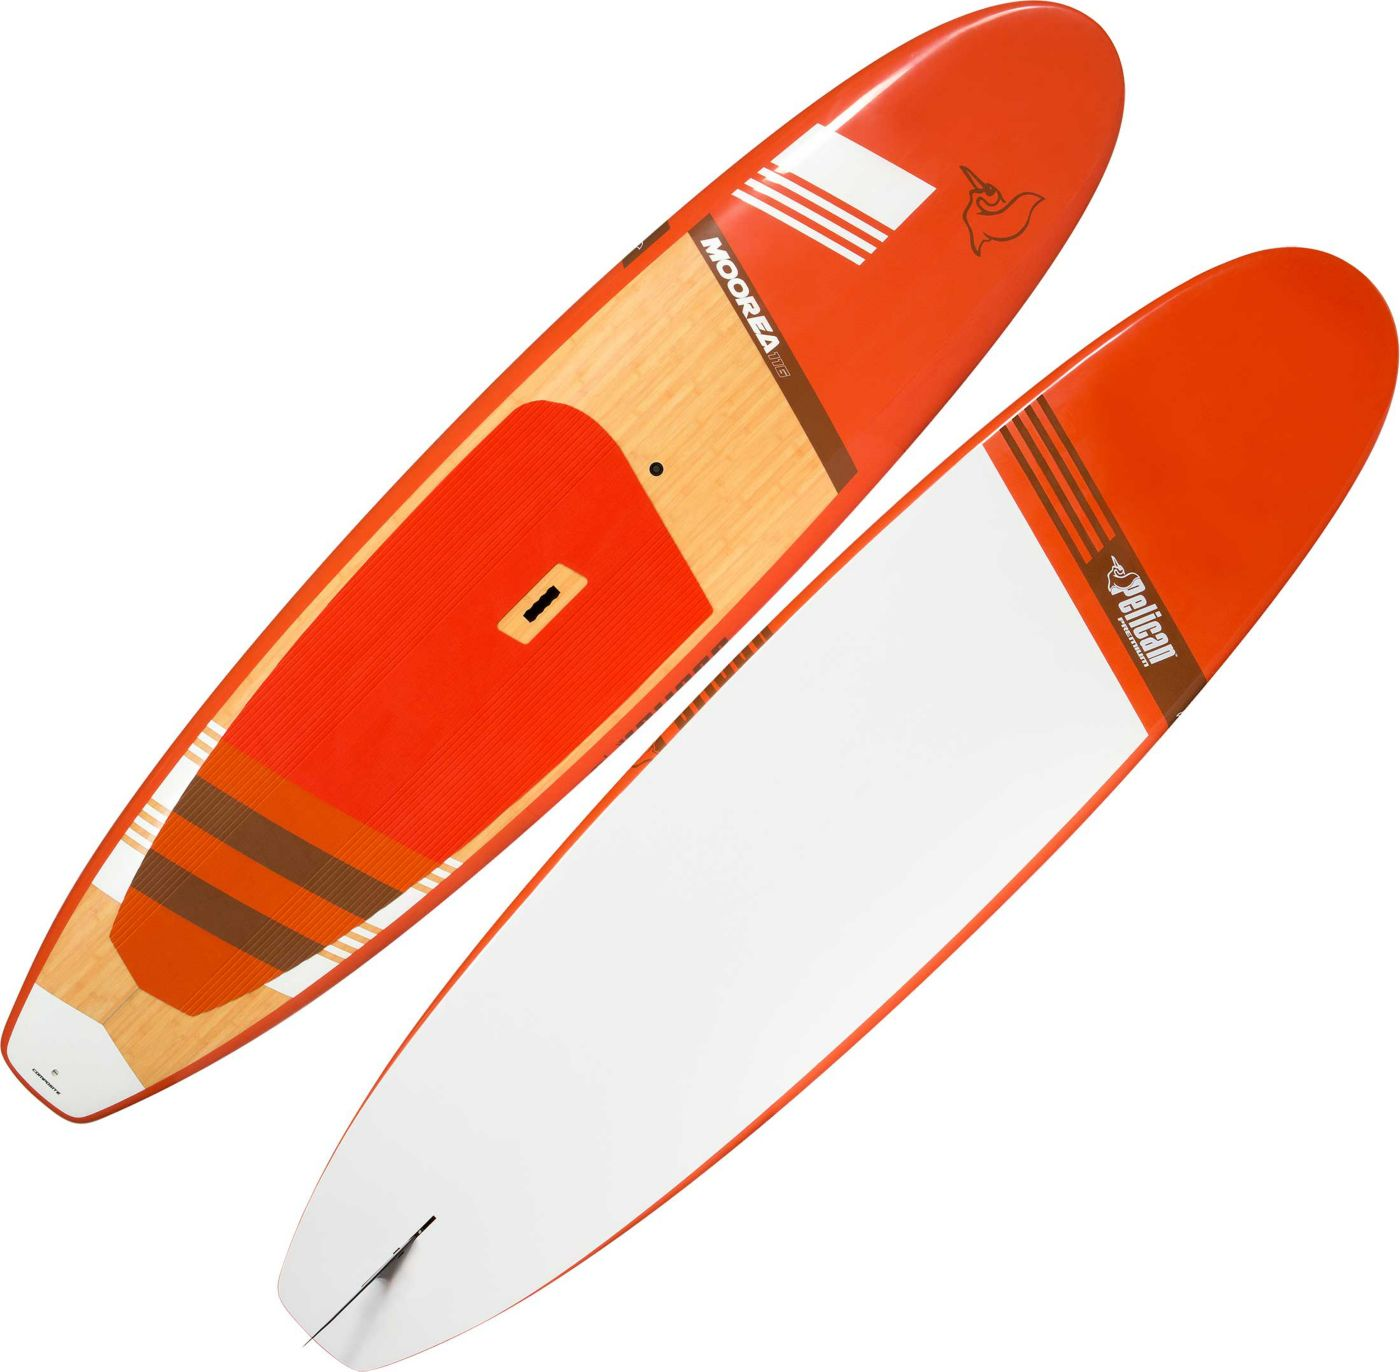 Pelican Moorea 116 Stand-Up Paddle Board